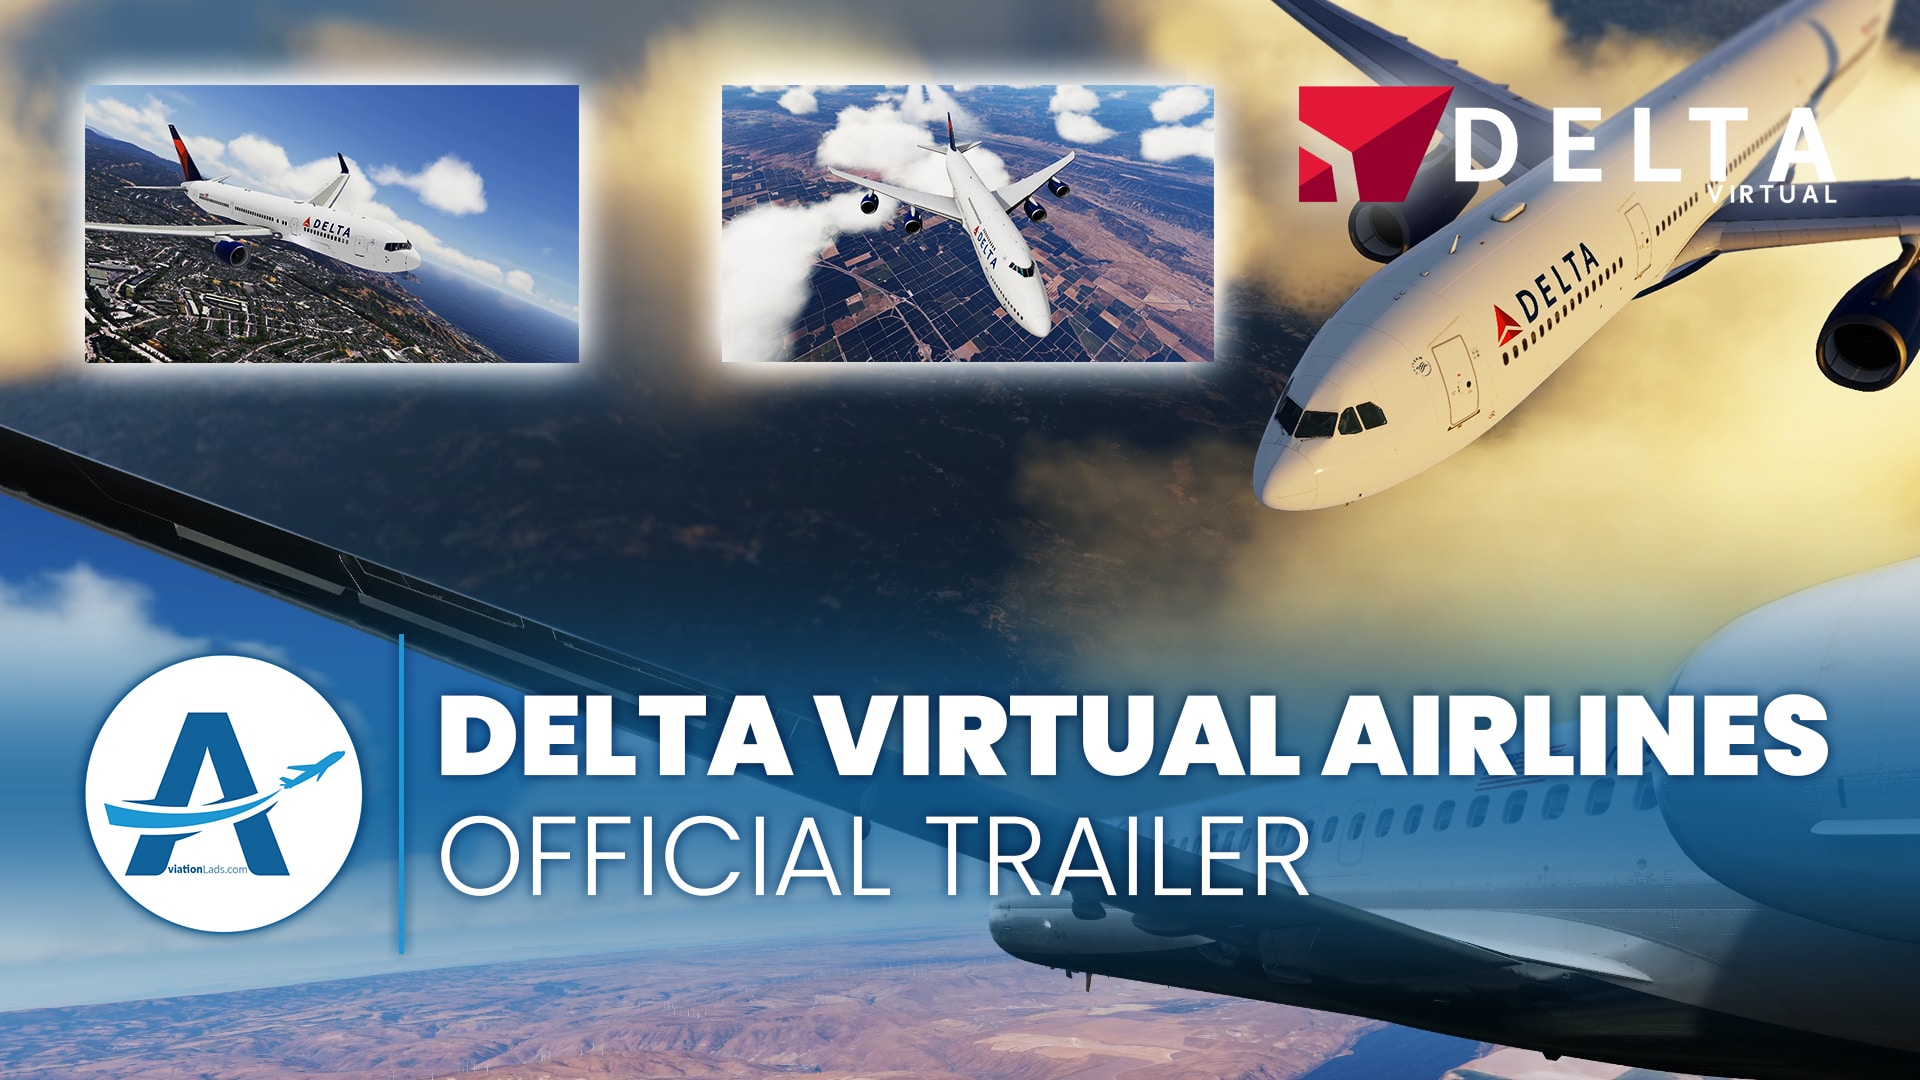 [TRAILER] Delta Virtual Airlines